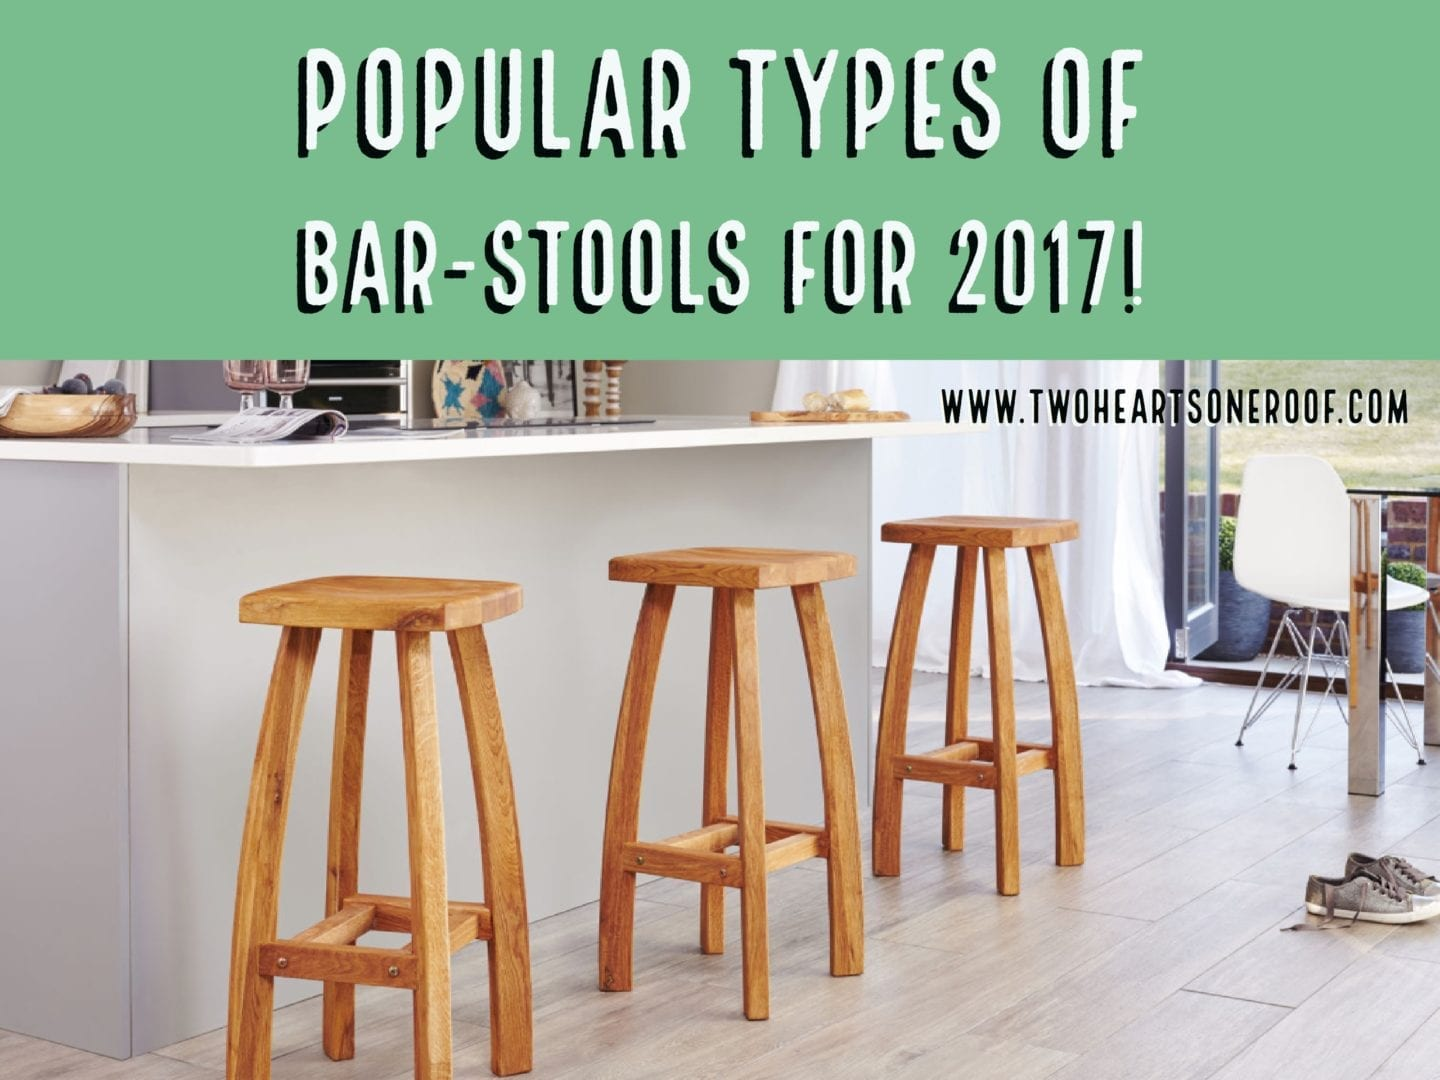 The Best 4 Types Of Bar Stools That Are Popular In 2017